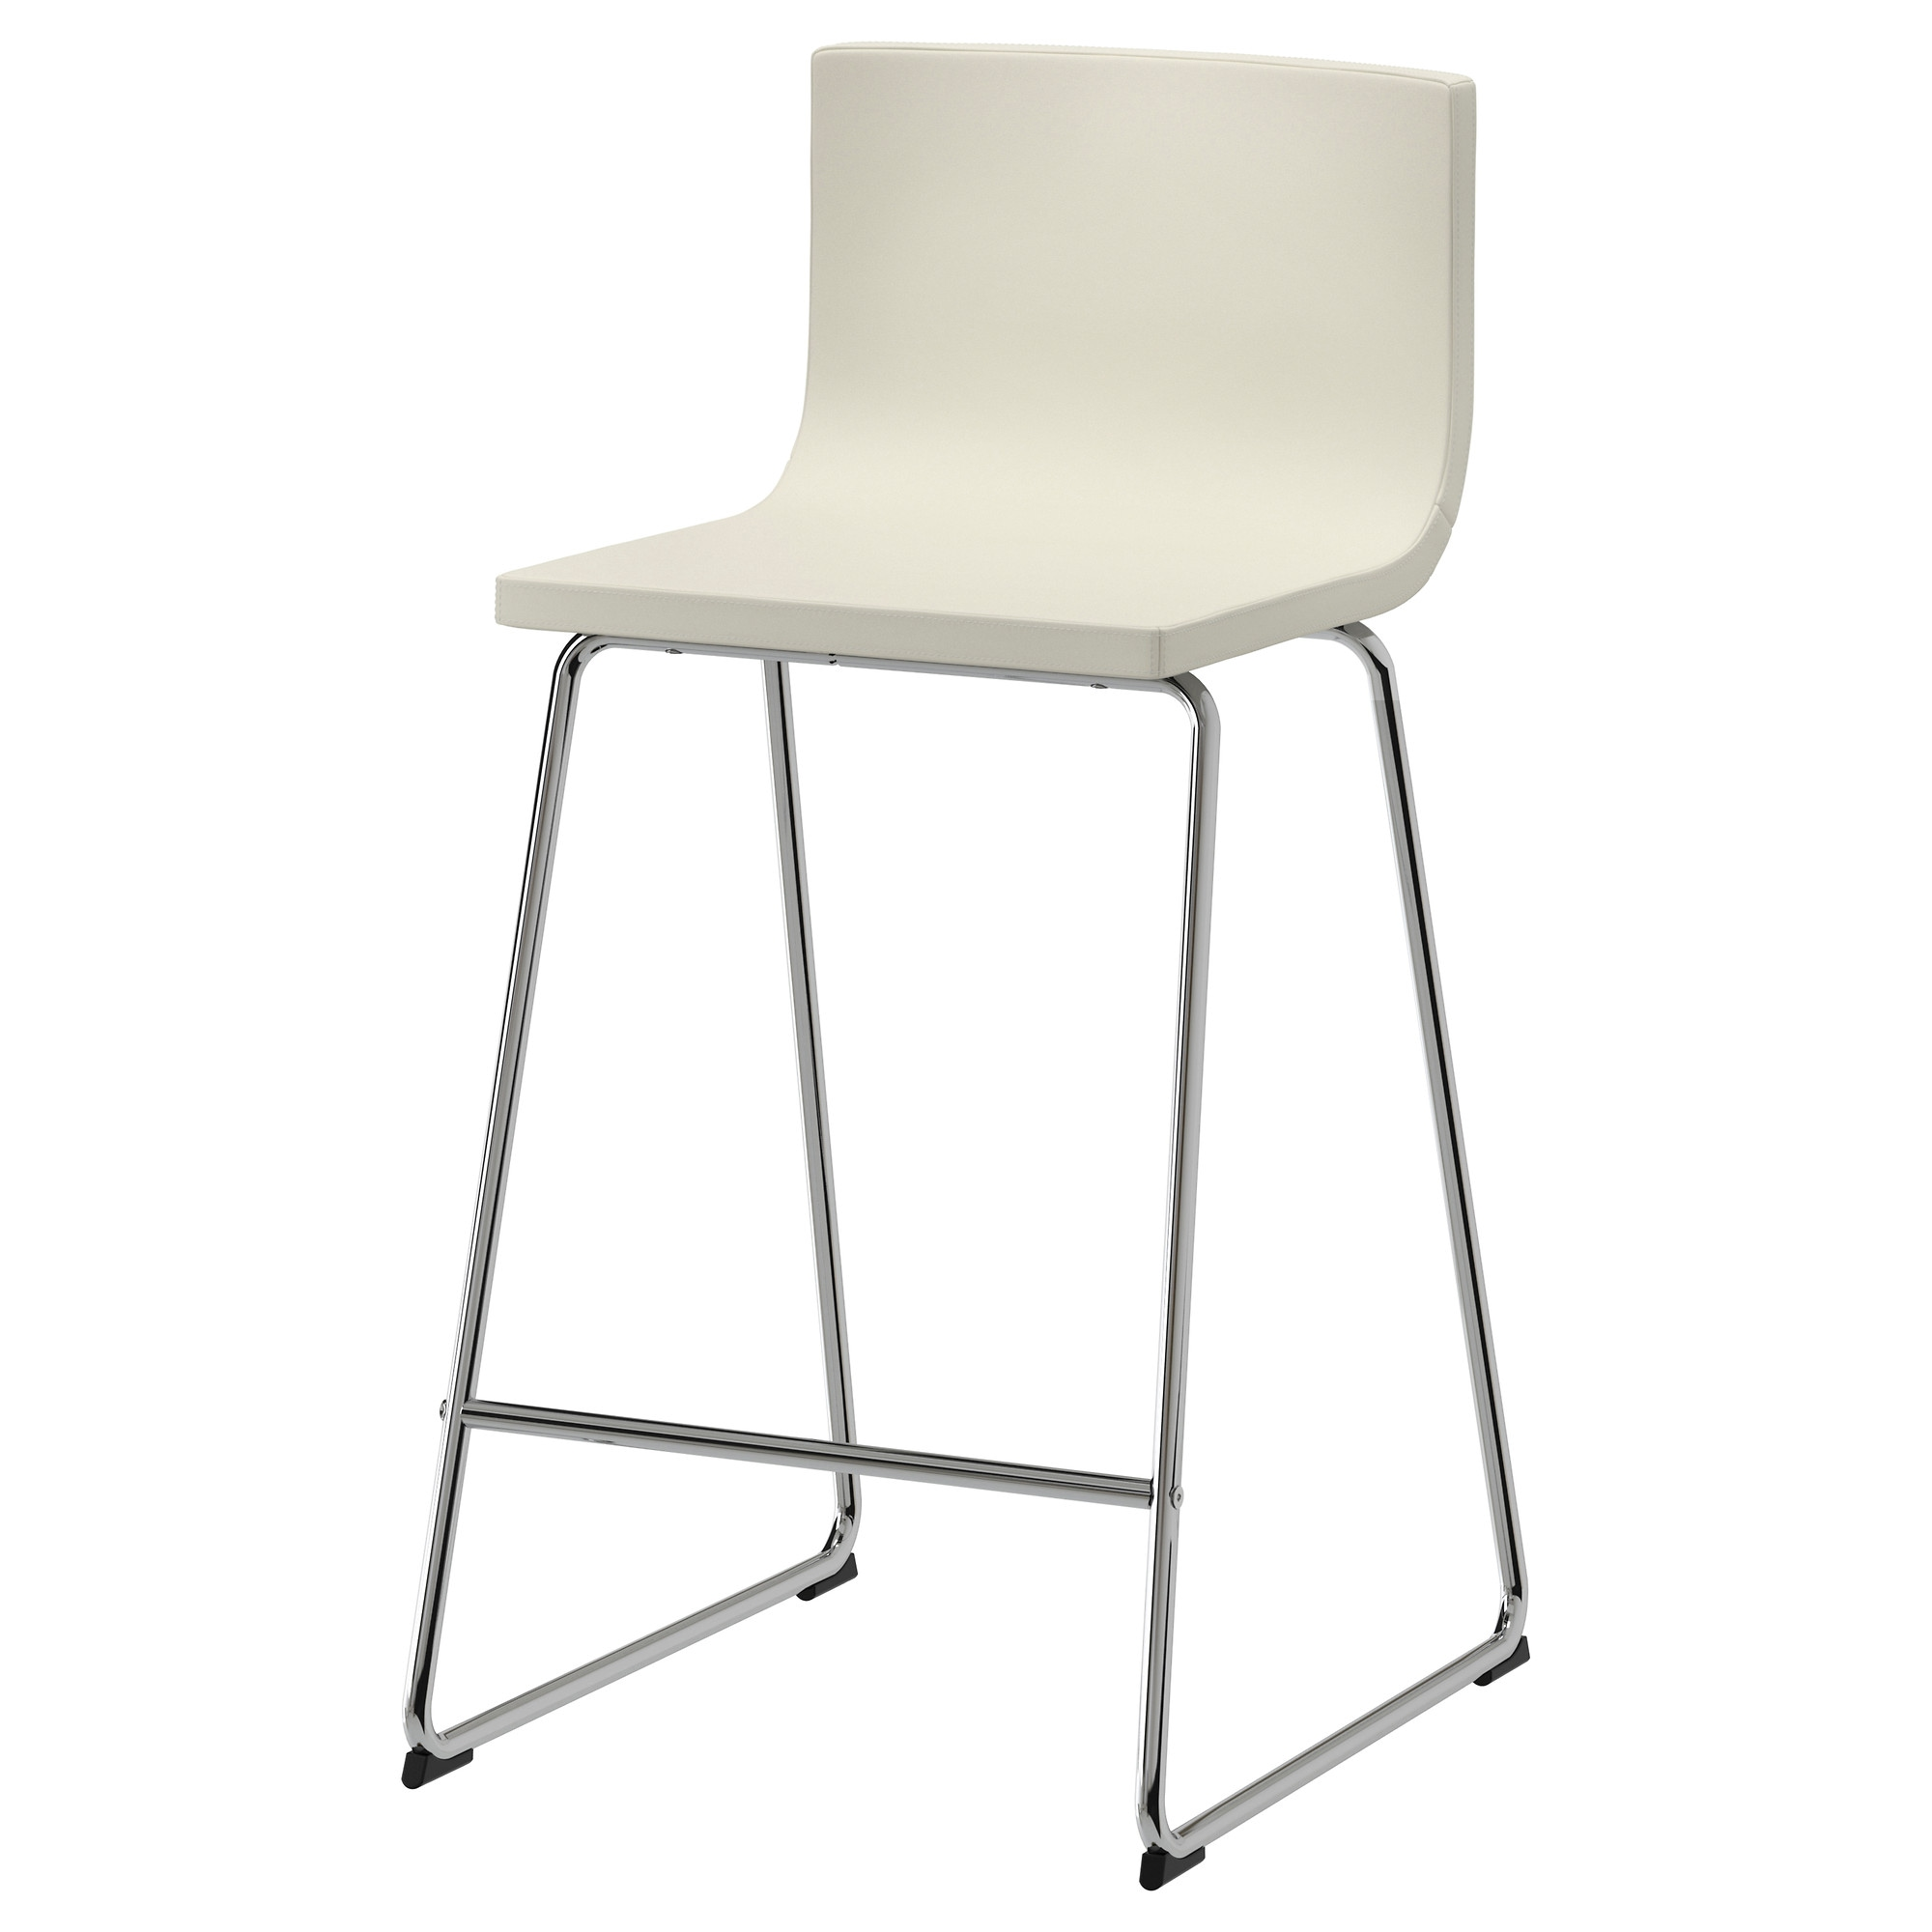 ikea barstol BERNHARD Bar stool with backrest   IKEA ikea barstol